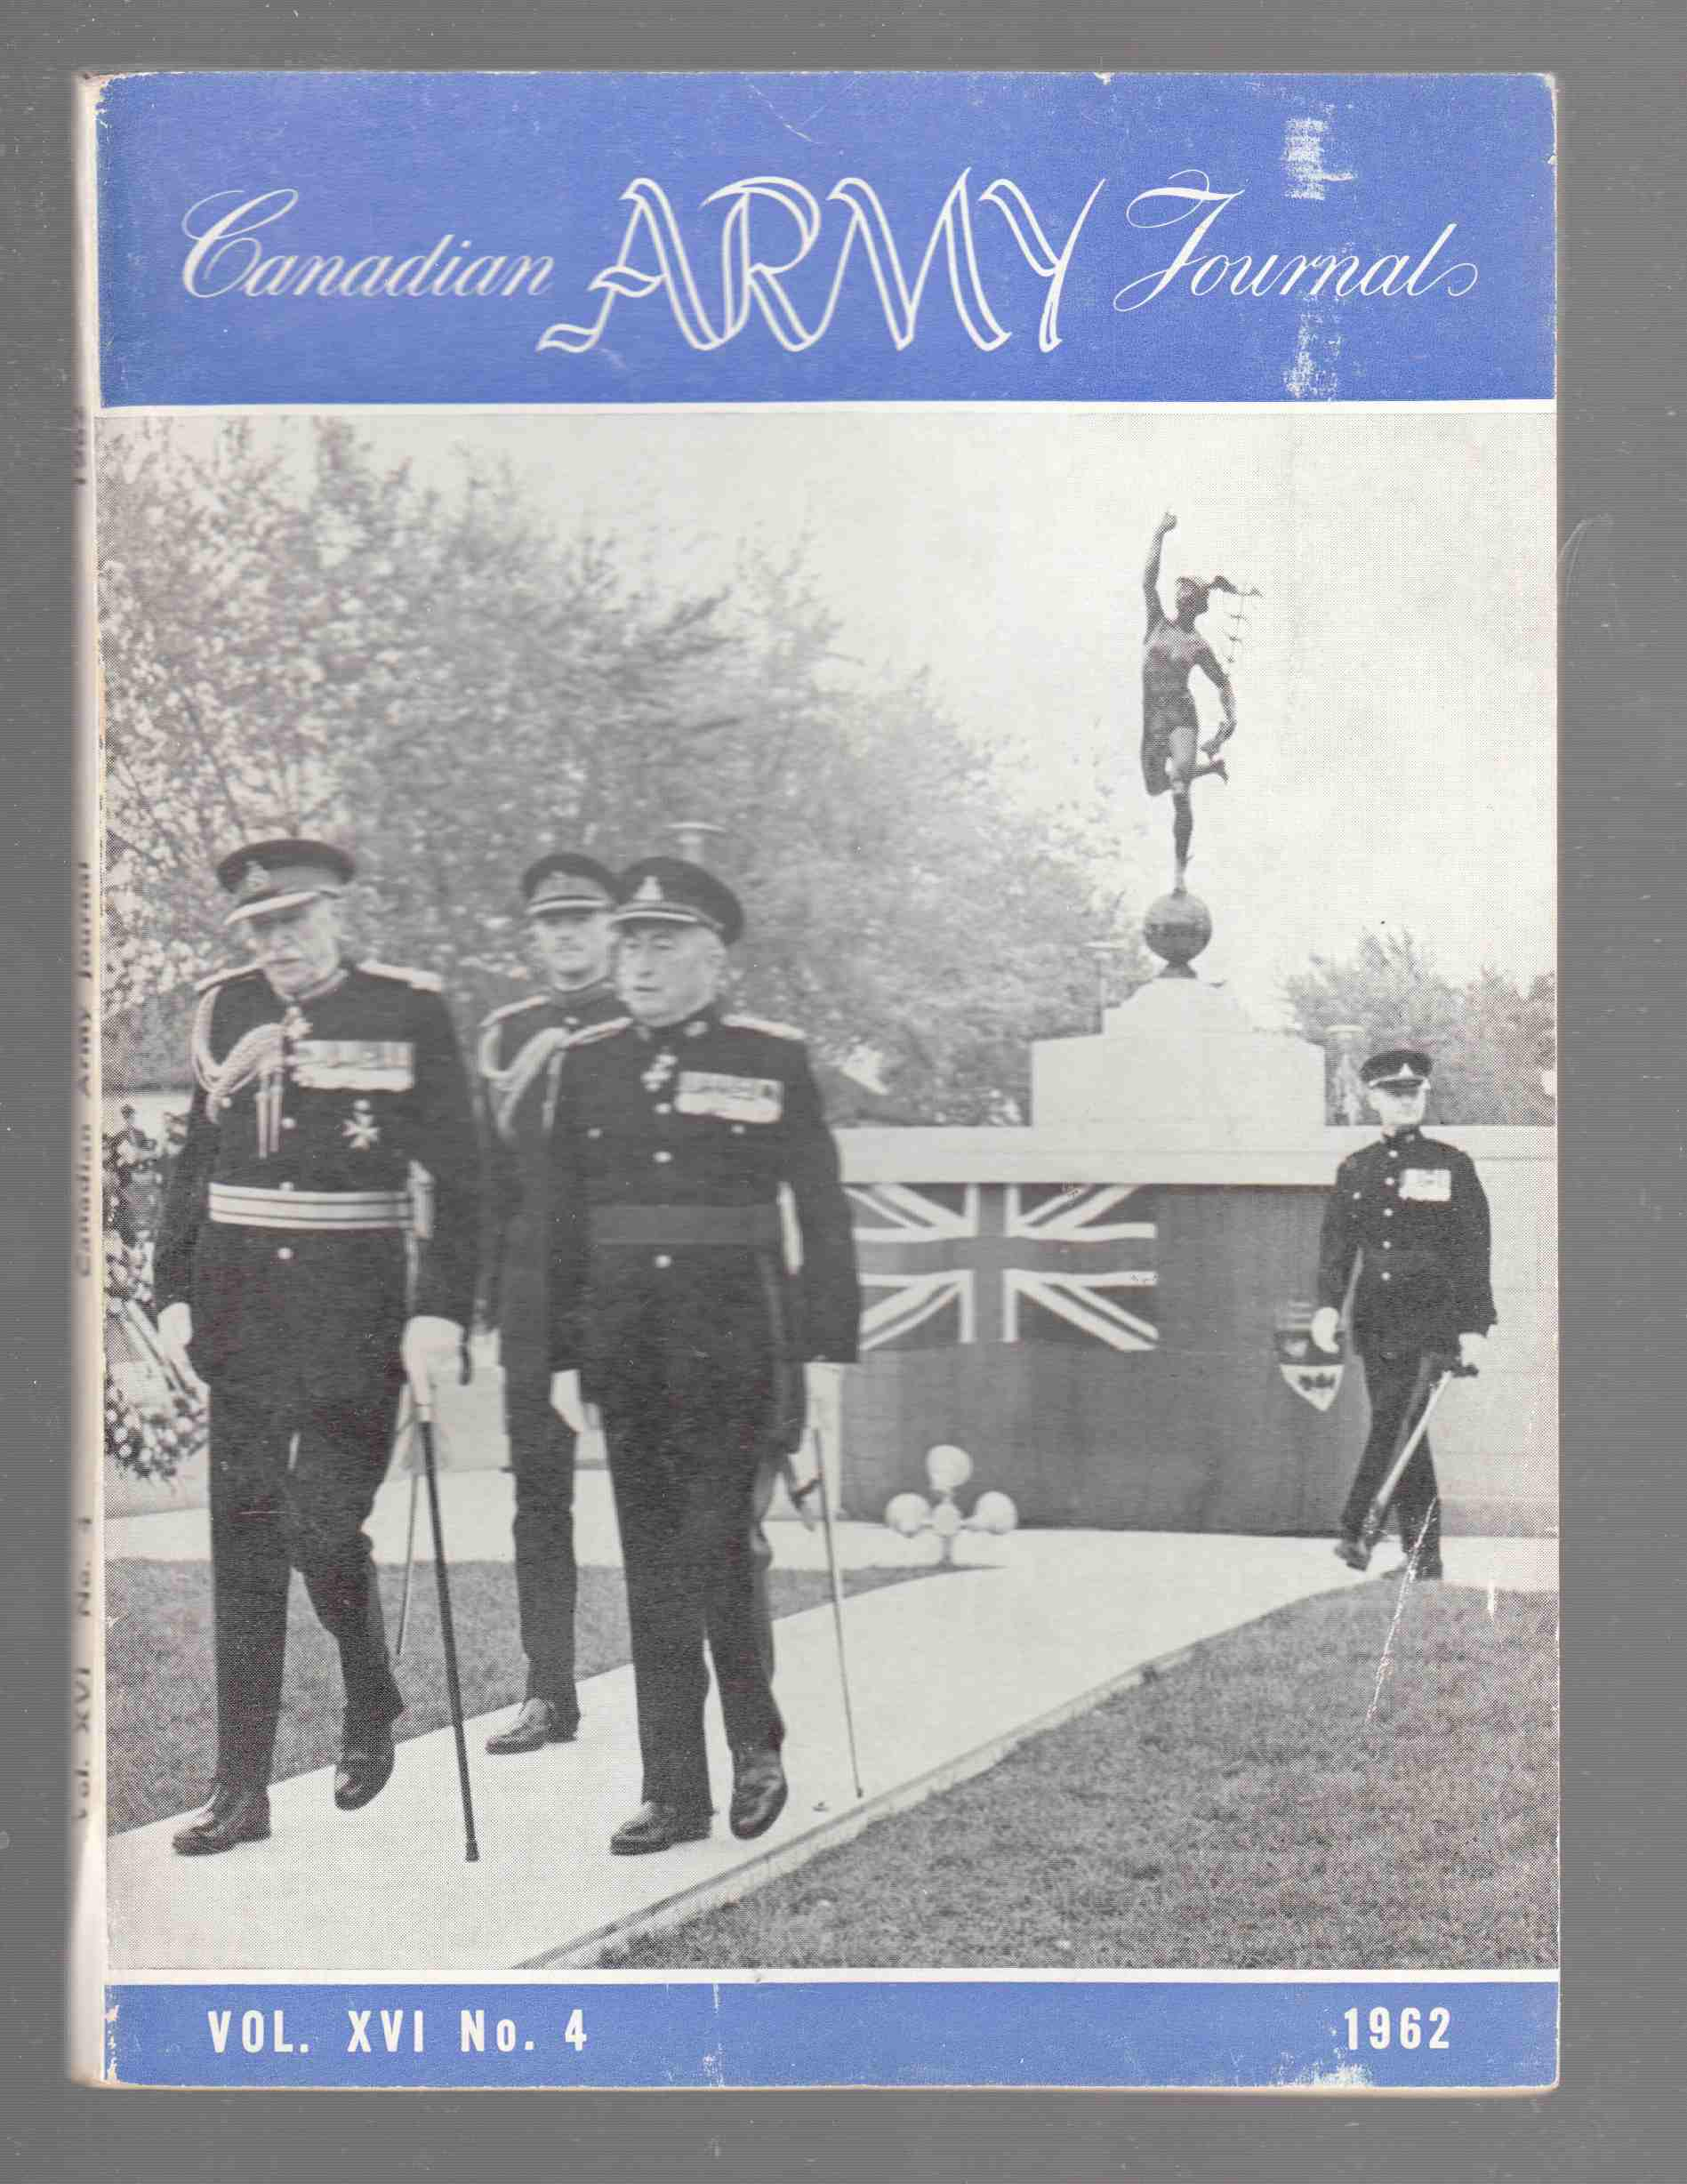 Image for The Canadian Army Journal Vol. XVII No. 4 1962